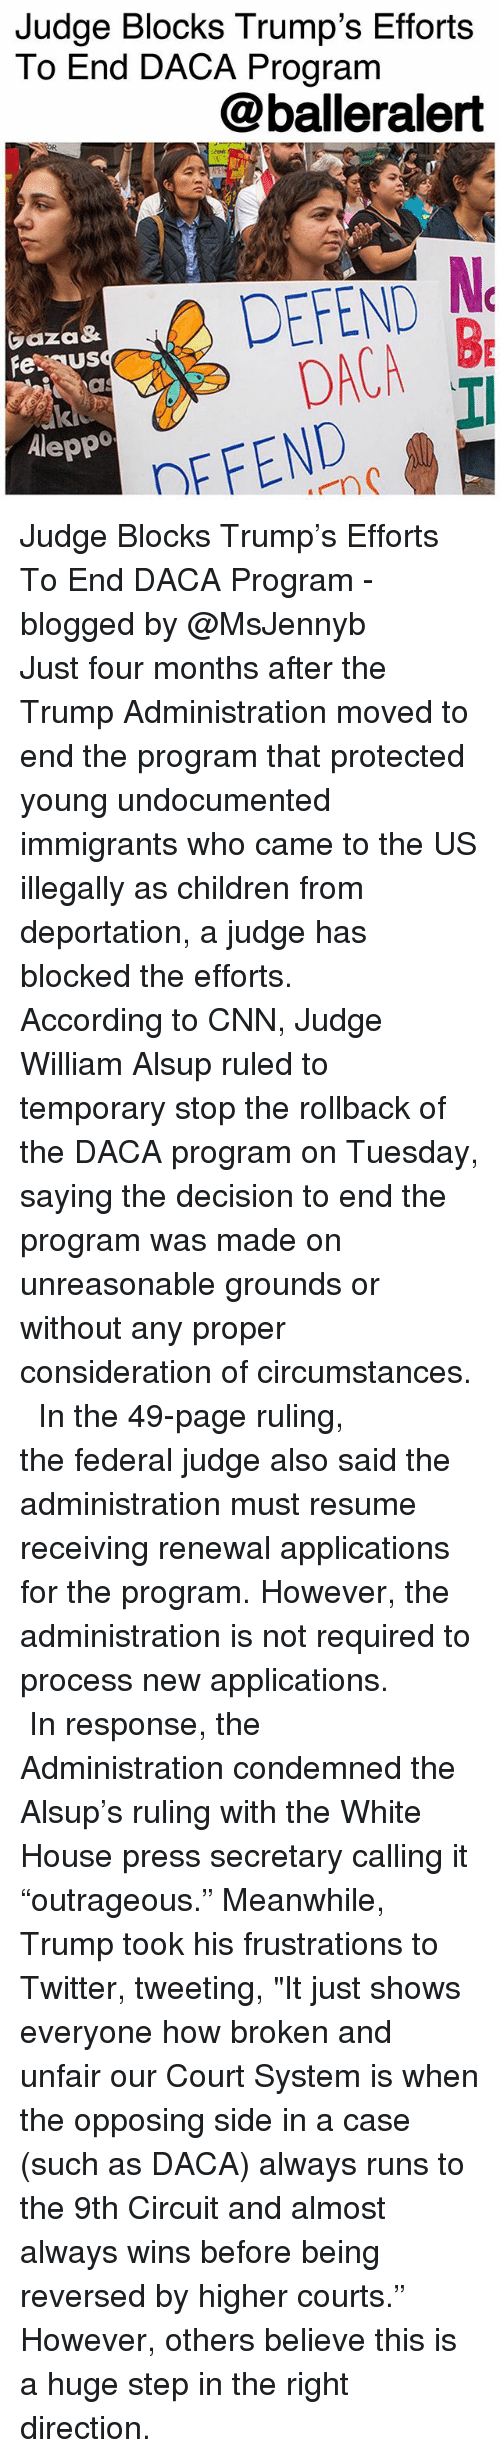 """Children, cnn.com, and Memes: Judge Blocks Trump's Efforts  To End DACA Program  @balleralert  EFEND N  DACA B  DFFENDI  aza&  feus  Aleppo Judge Blocks Trump's Efforts To End DACA Program - blogged by @MsJennyb ⠀⠀⠀⠀⠀⠀⠀ Just four months after the Trump Administration moved to end the program that protected young undocumented immigrants who came to the US illegally as children from deportation, a judge has blocked the efforts. ⠀⠀⠀⠀⠀⠀⠀ ⠀⠀⠀⠀⠀⠀⠀ According to CNN, Judge William Alsup ruled to temporary stop the rollback of the DACA program on Tuesday, saying the decision to end the program was made on unreasonable grounds or without any proper consideration of circumstances. ⠀⠀⠀⠀⠀⠀⠀ ⠀⠀⠀⠀⠀⠀⠀ In the 49-page ruling, the federal judge also said the administration must resume receiving renewal applications for the program. However, the administration is not required to process new applications. ⠀⠀⠀⠀⠀⠀⠀ ⠀⠀⠀⠀⠀⠀⠀ In response, the Administration condemned the Alsup's ruling with the White House press secretary calling it """"outrageous."""" Meanwhile, Trump took his frustrations to Twitter, tweeting, """"It just shows everyone how broken and unfair our Court System is when the opposing side in a case (such as DACA) always runs to the 9th Circuit and almost always wins before being reversed by higher courts."""" However, others believe this is a huge step in the right direction."""